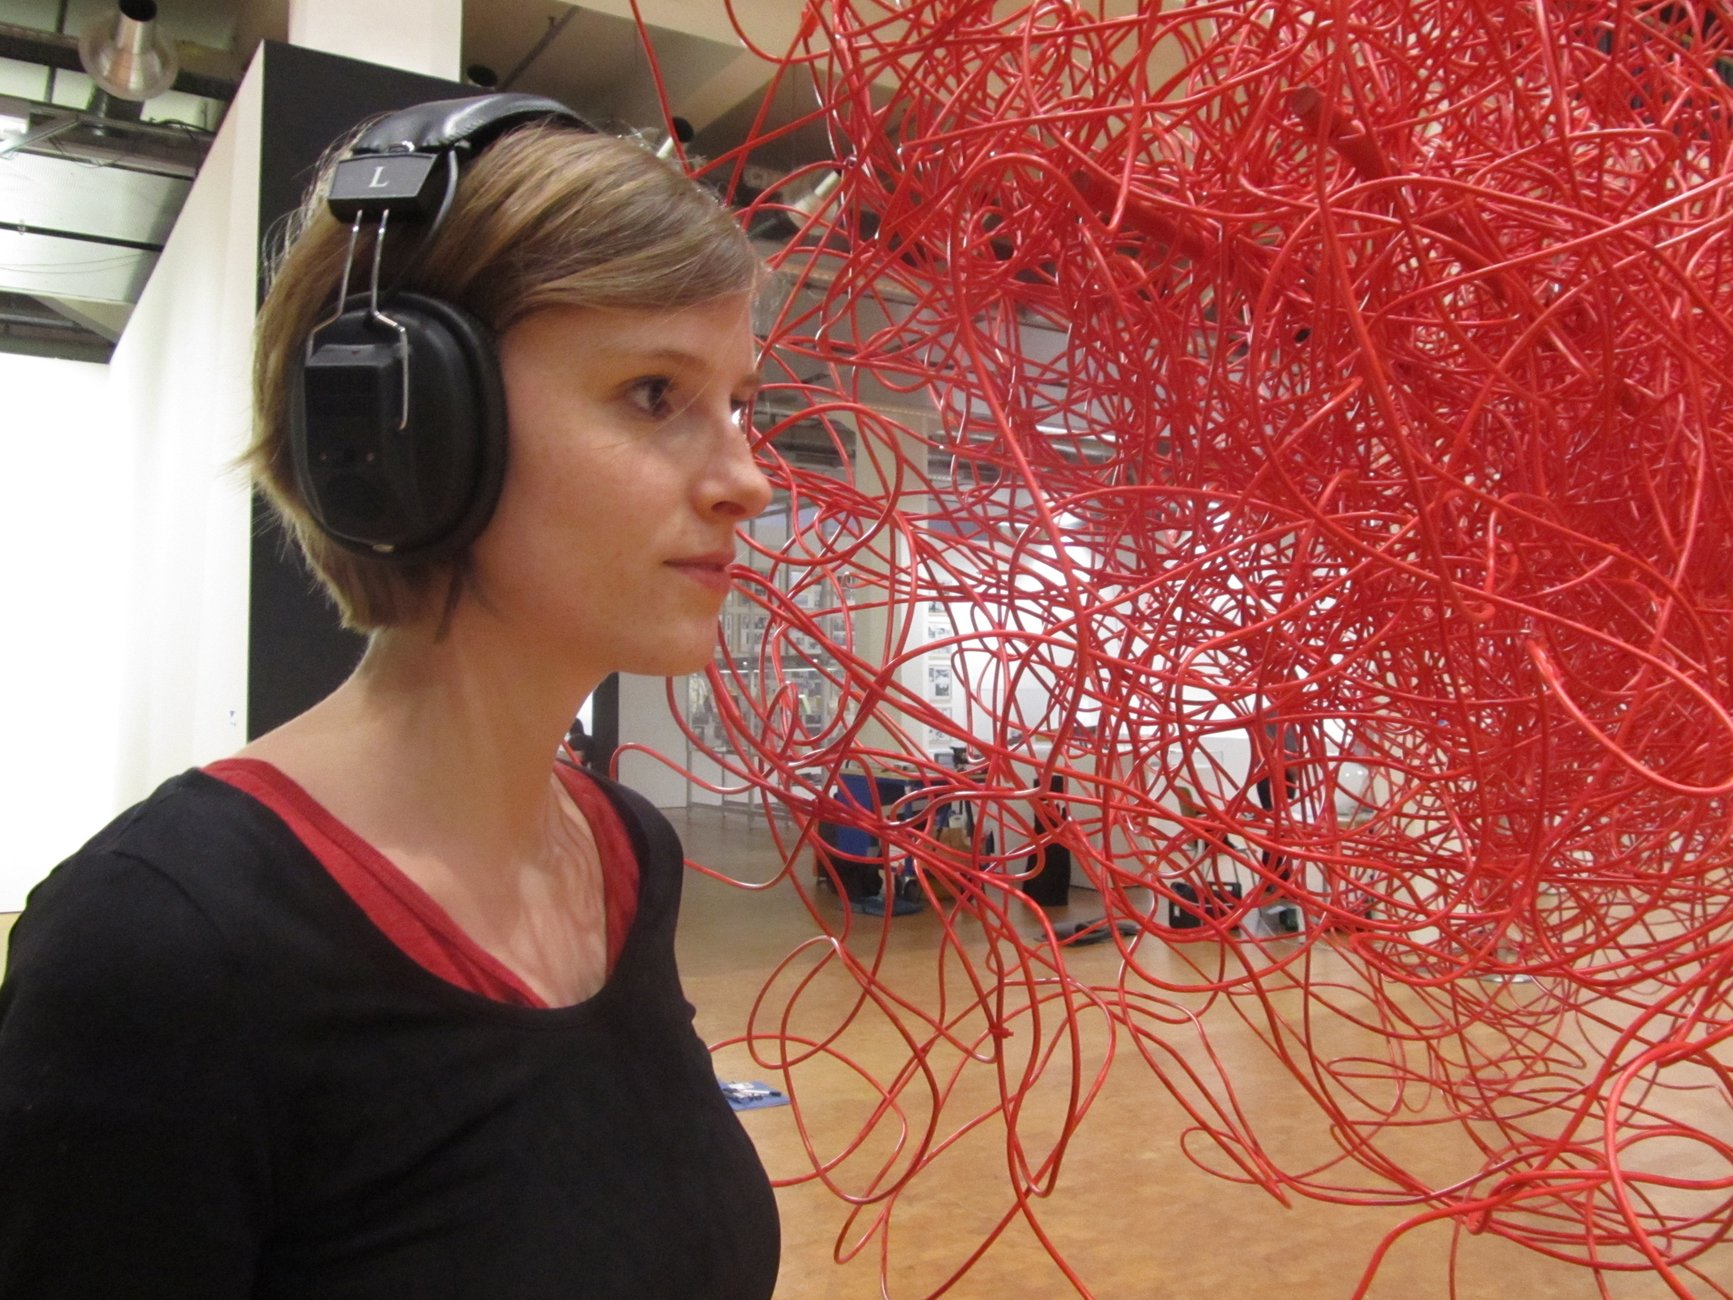 A woman in headphones stands listening next to a tangled, hanging mass of red cables